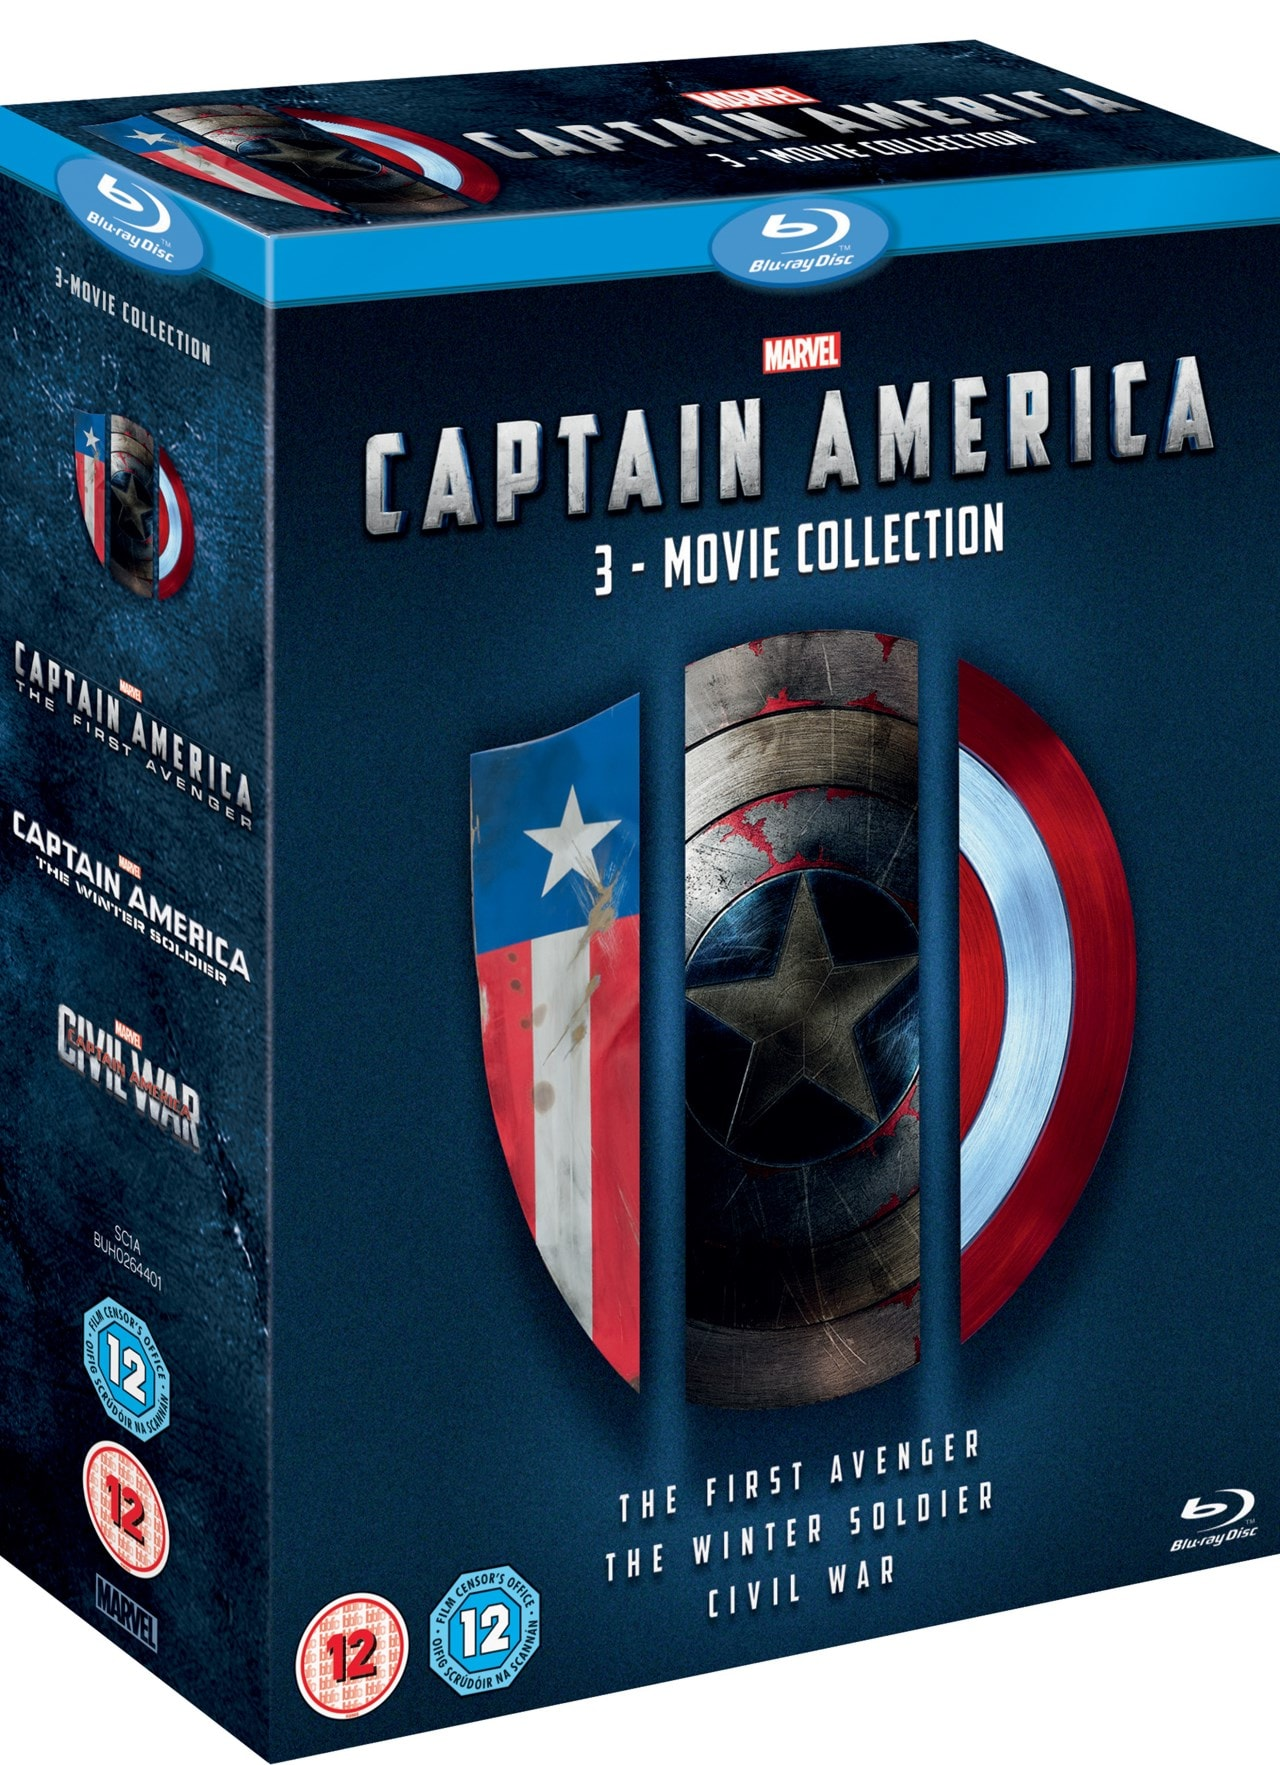 Captain America: 3-movie Collection - 2